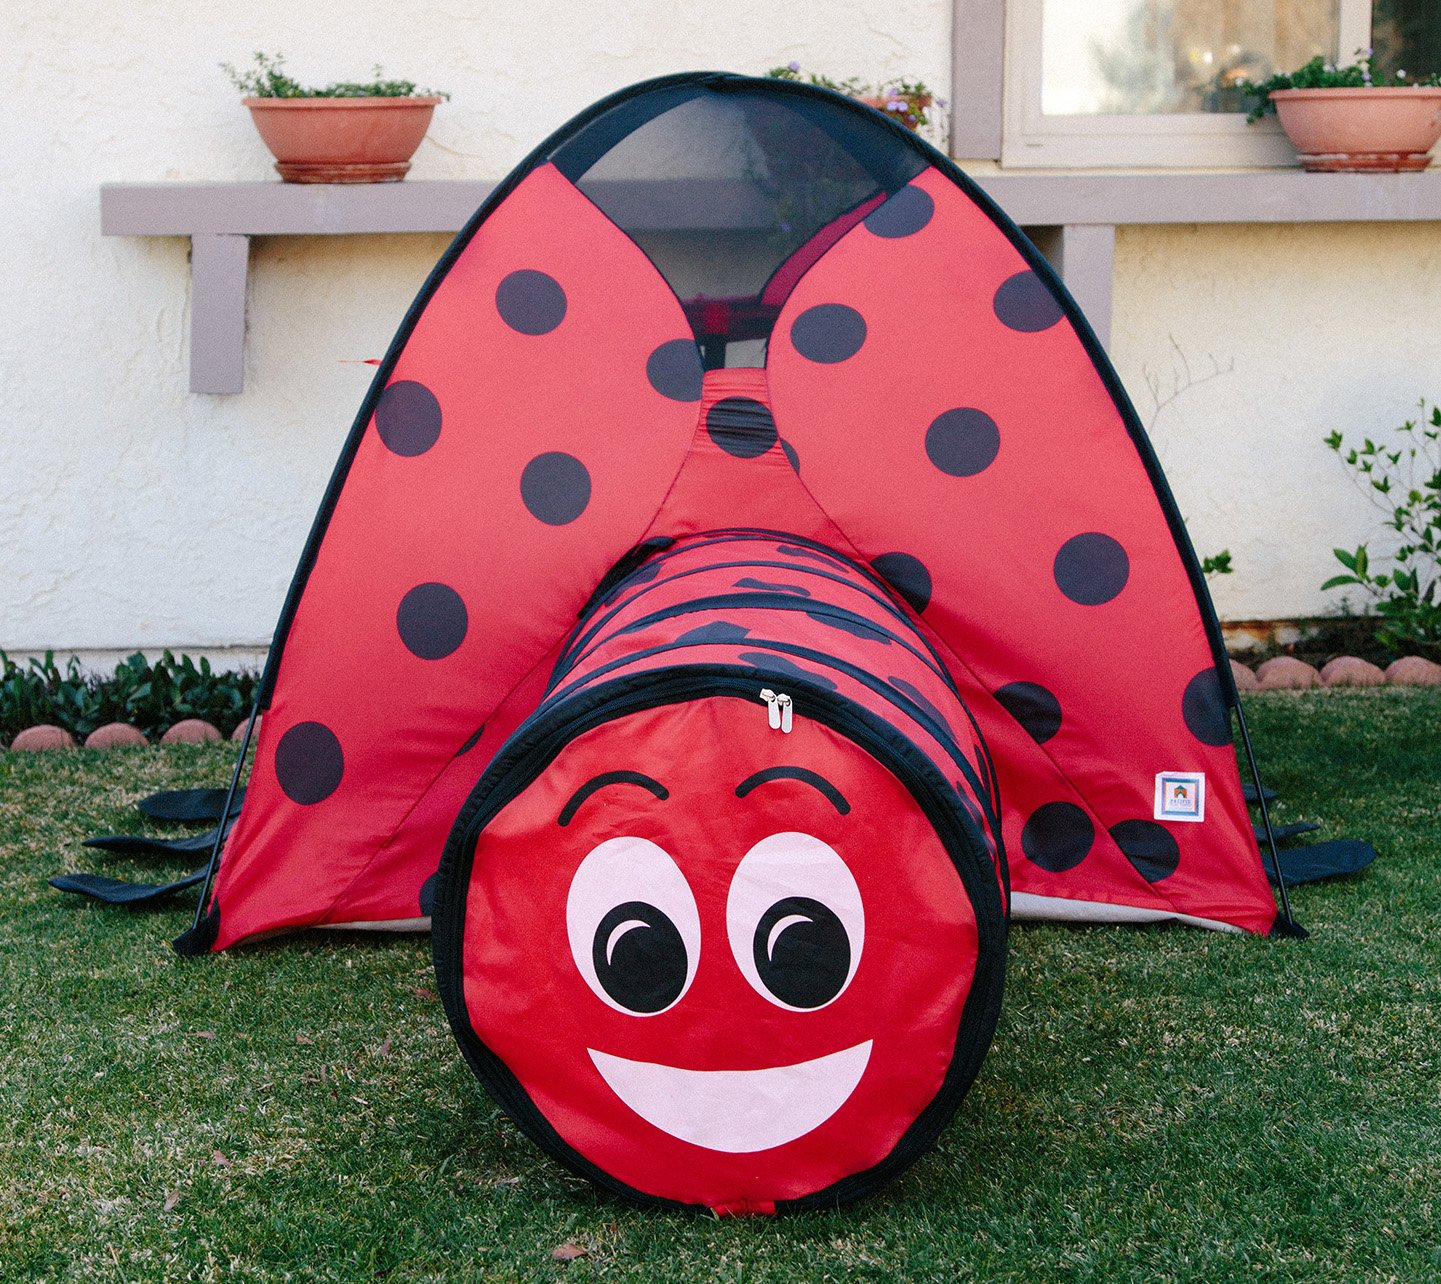 Pacific Play Tents 19420 Kids Lady Bug 8-Foot Parachute with handles /& Carry Bag for Indoor//Outdoor Fun